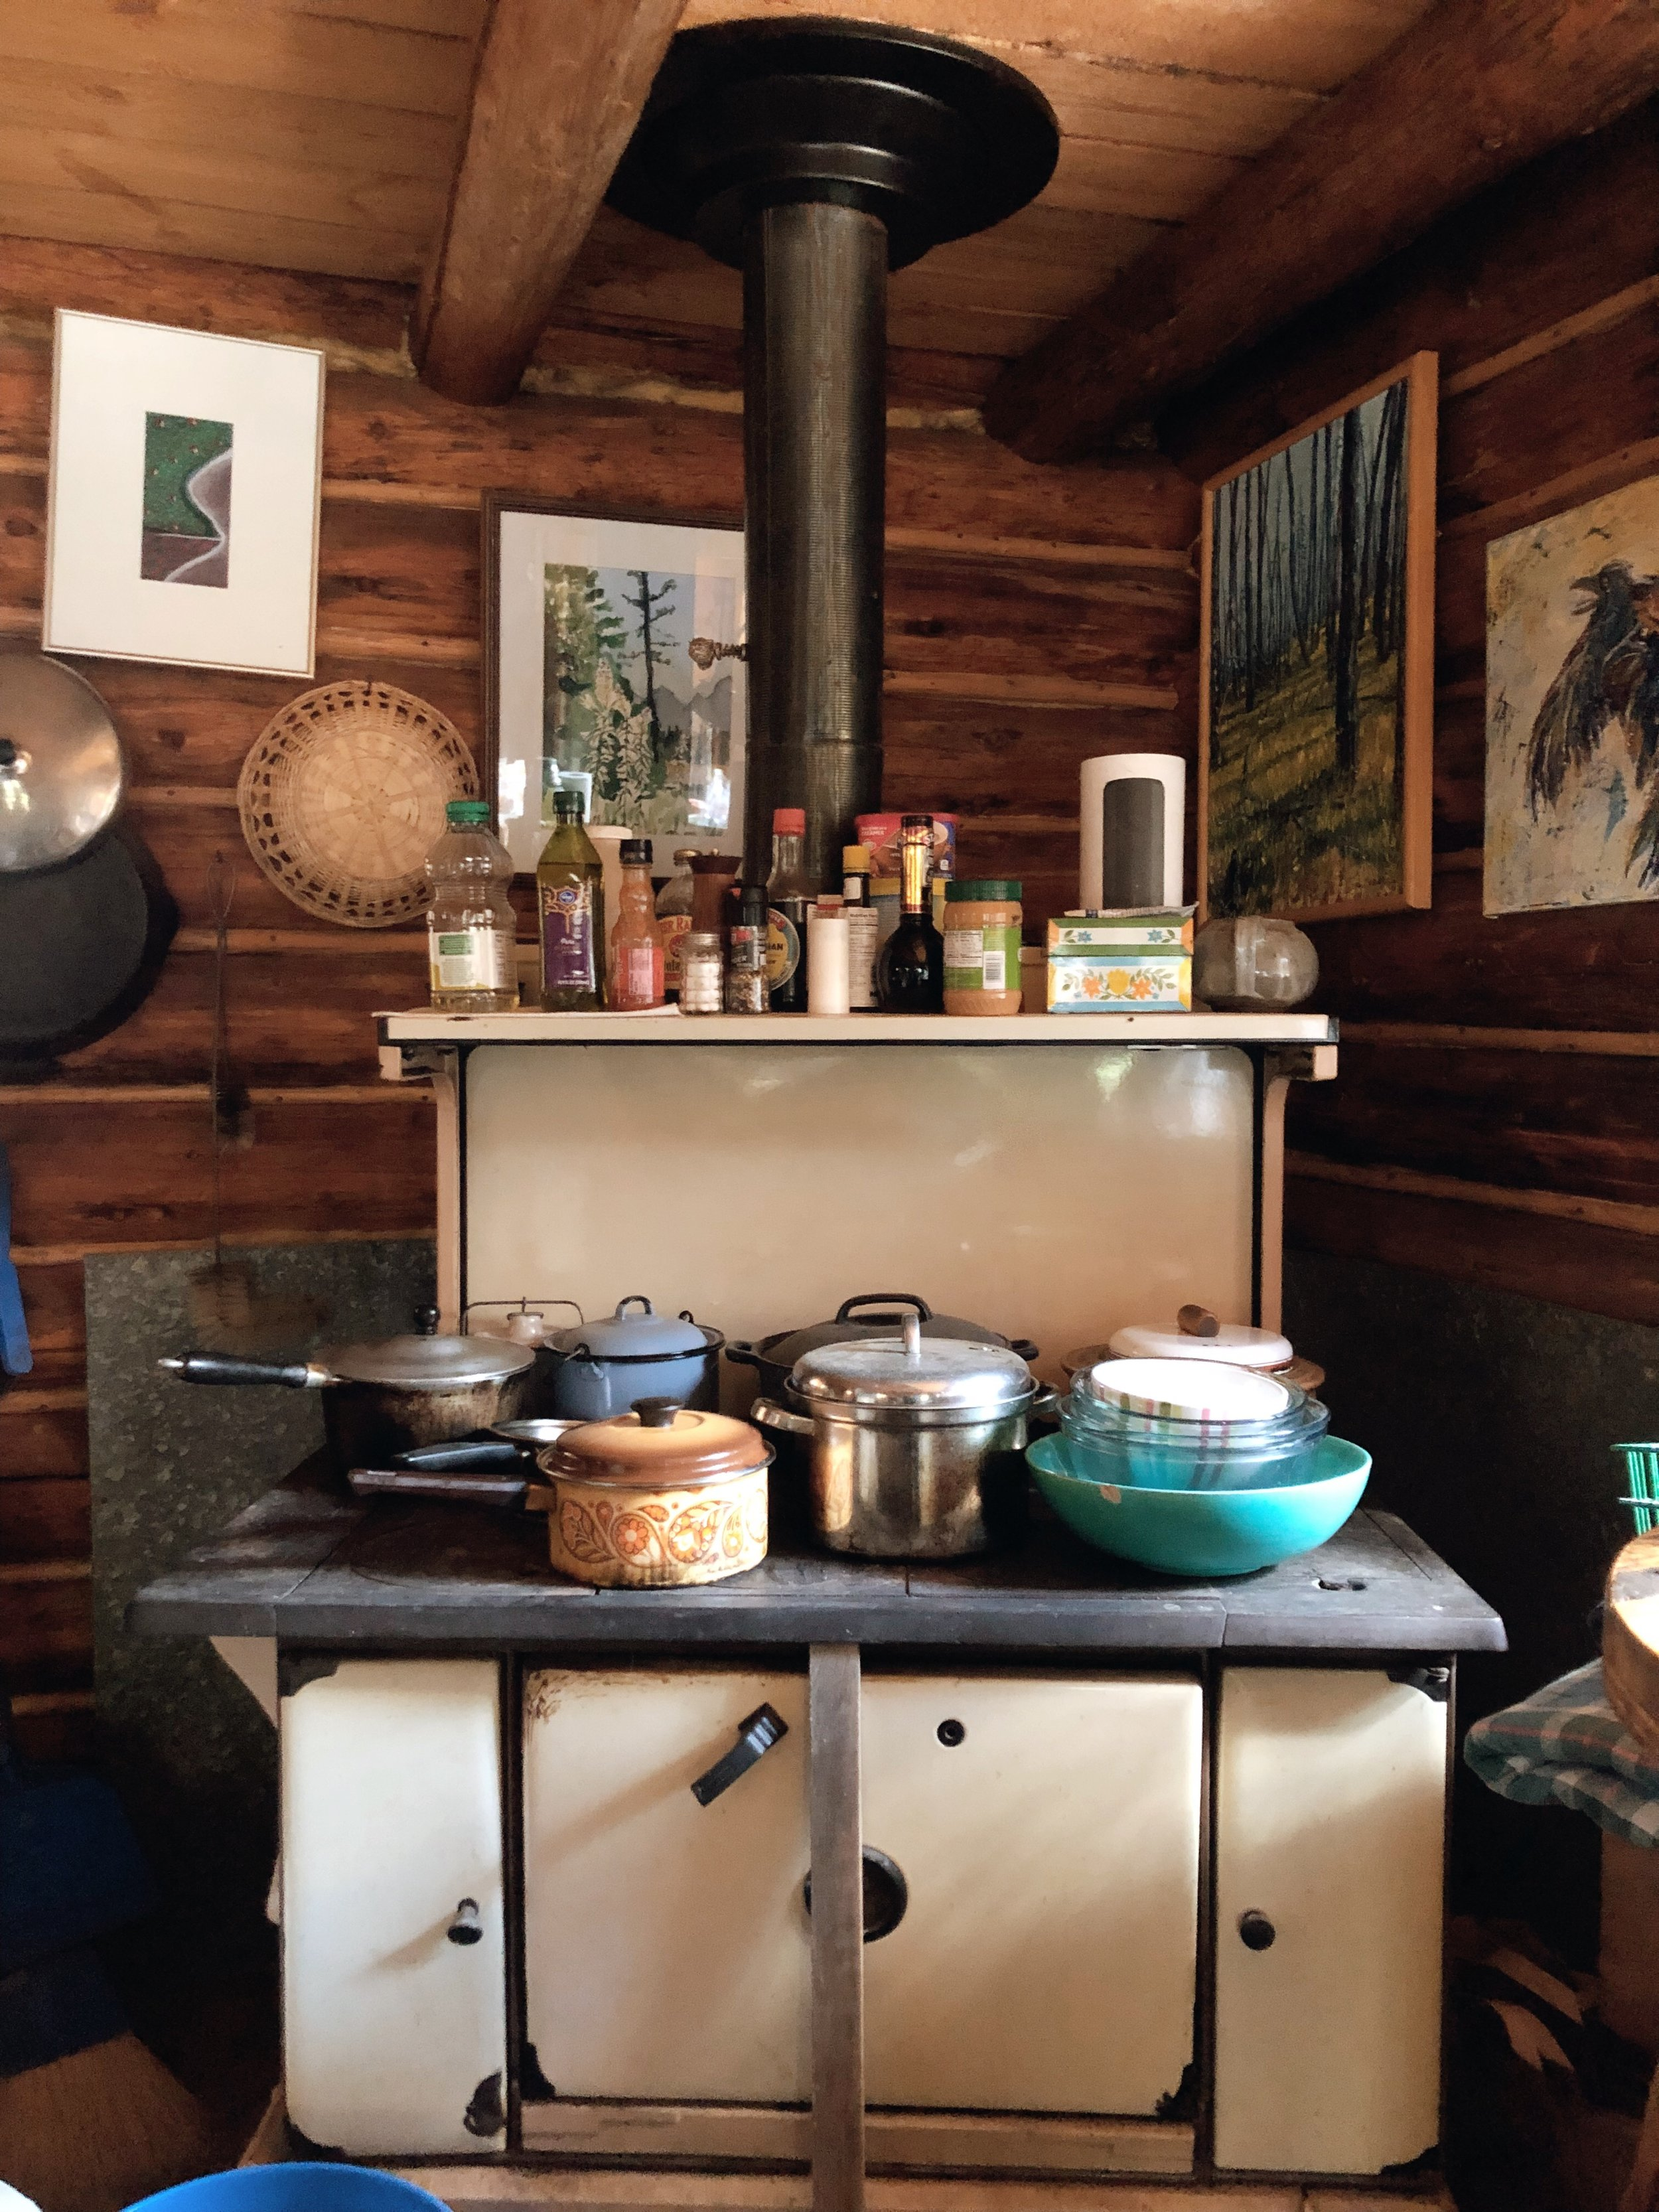 Peter's stove, located in the corner of his space, surrounded by artwork and kitchen supplies.